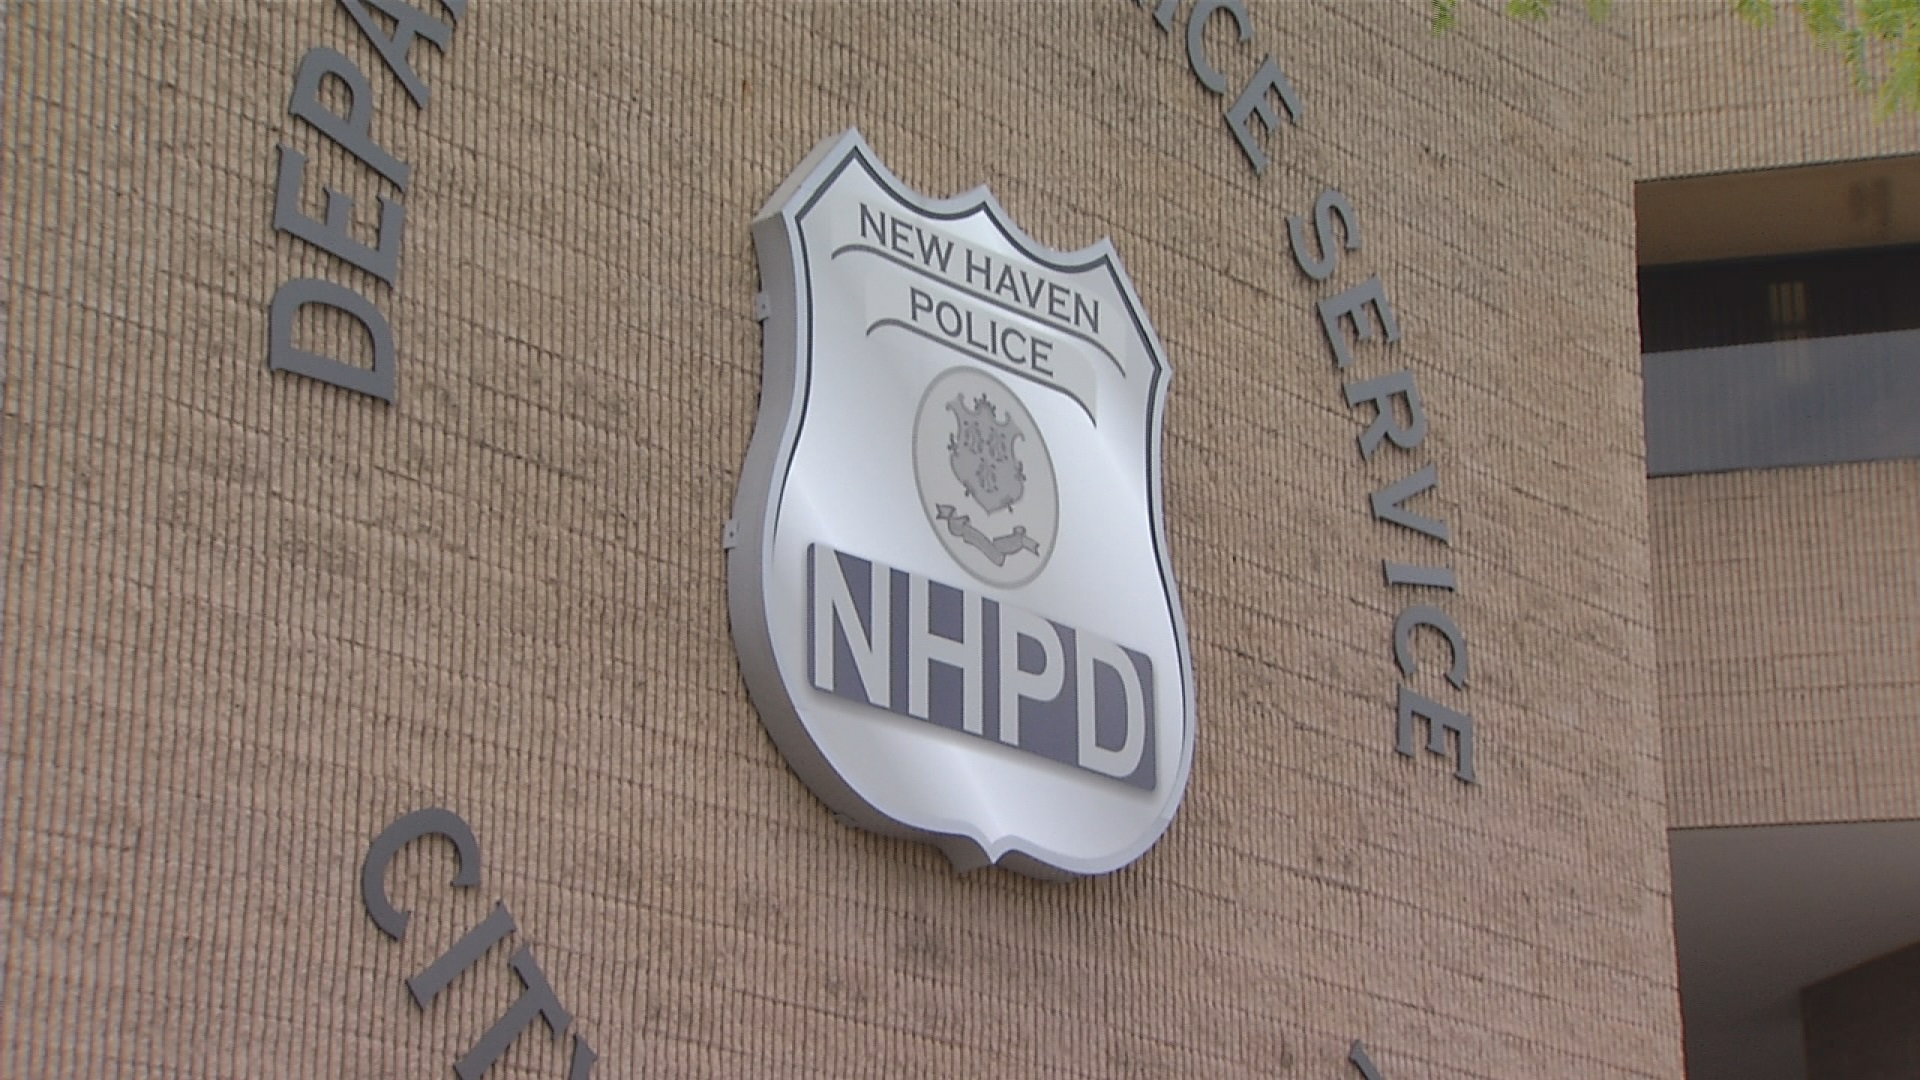 Former New Haven City Employee Facing Larceny Charges